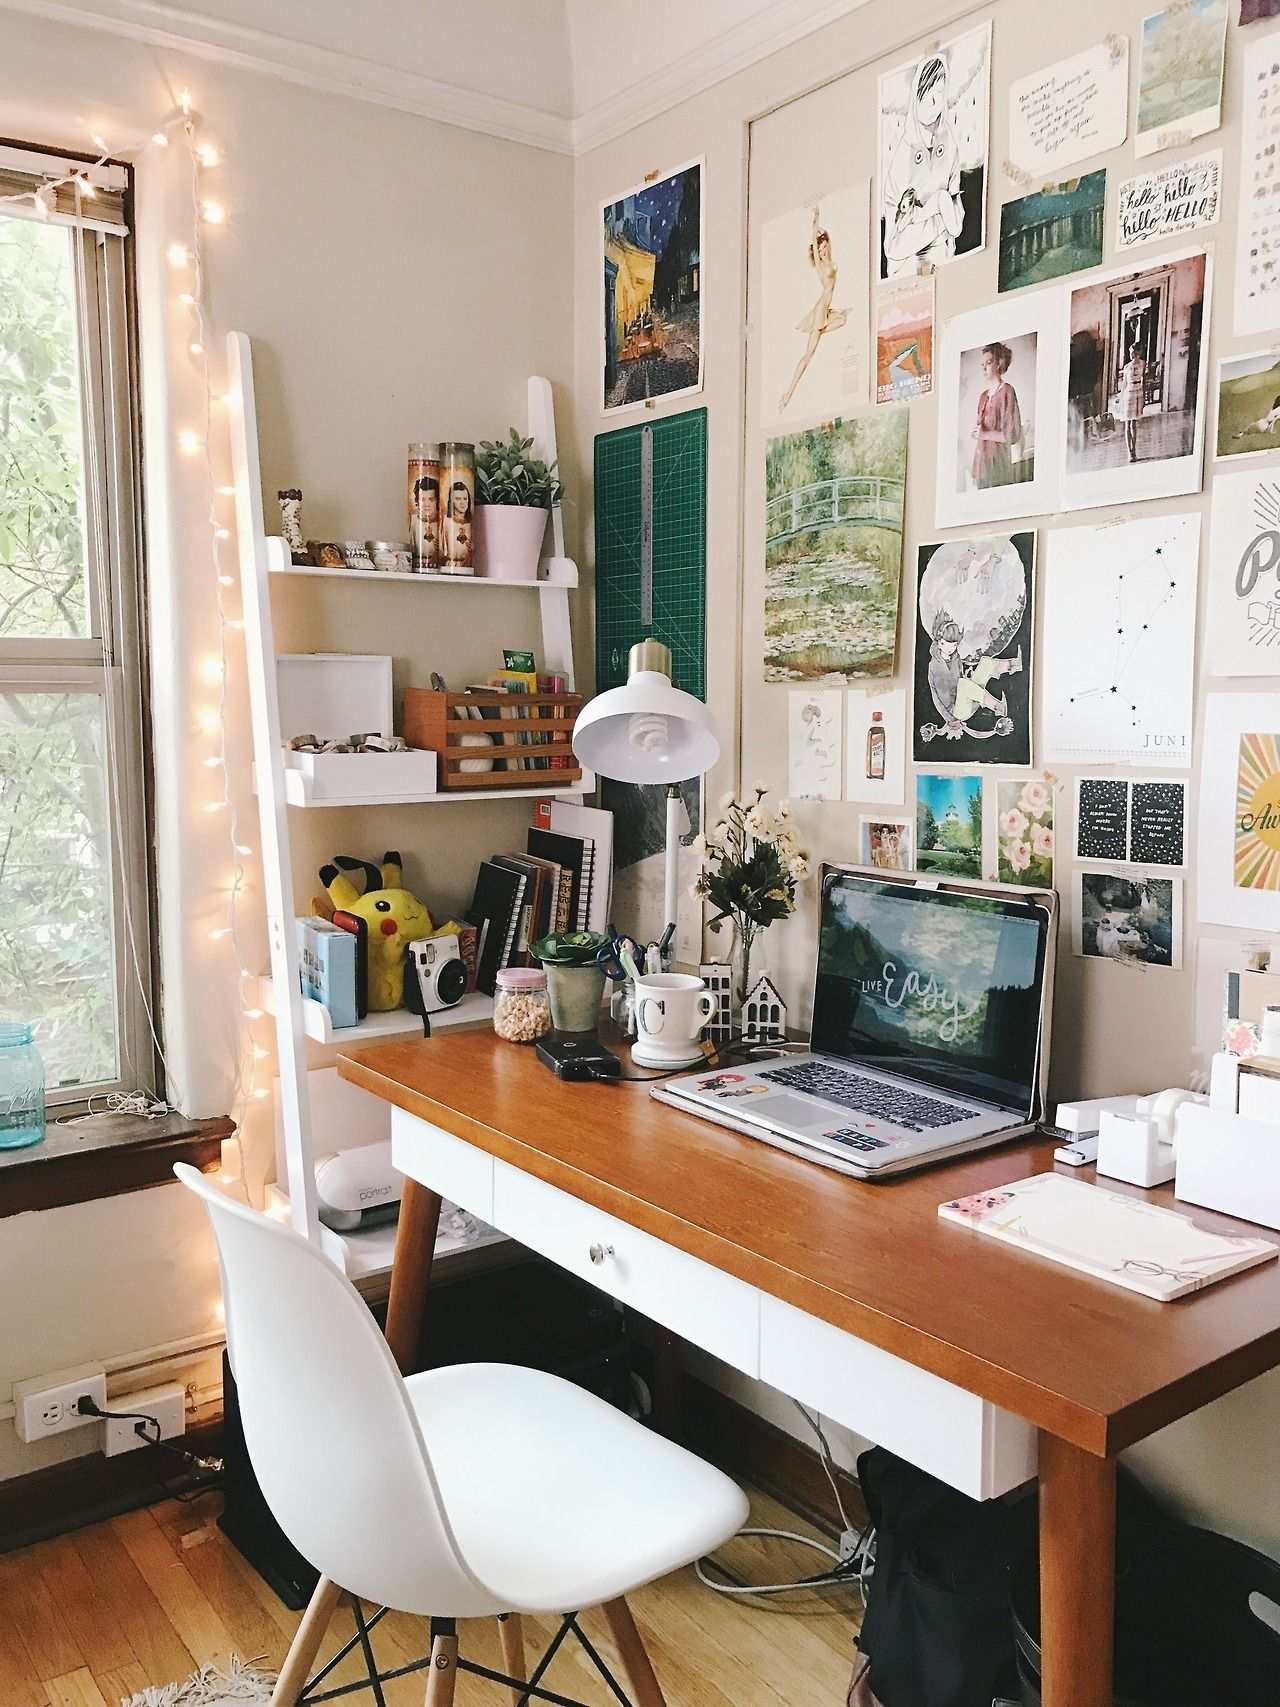 How To Maximize Your Usage Of A Planning Tool That Turns Even The Most Scatterbrained Student Into An Organized Simple Desk Decor Aesthetic Room Decor Interior